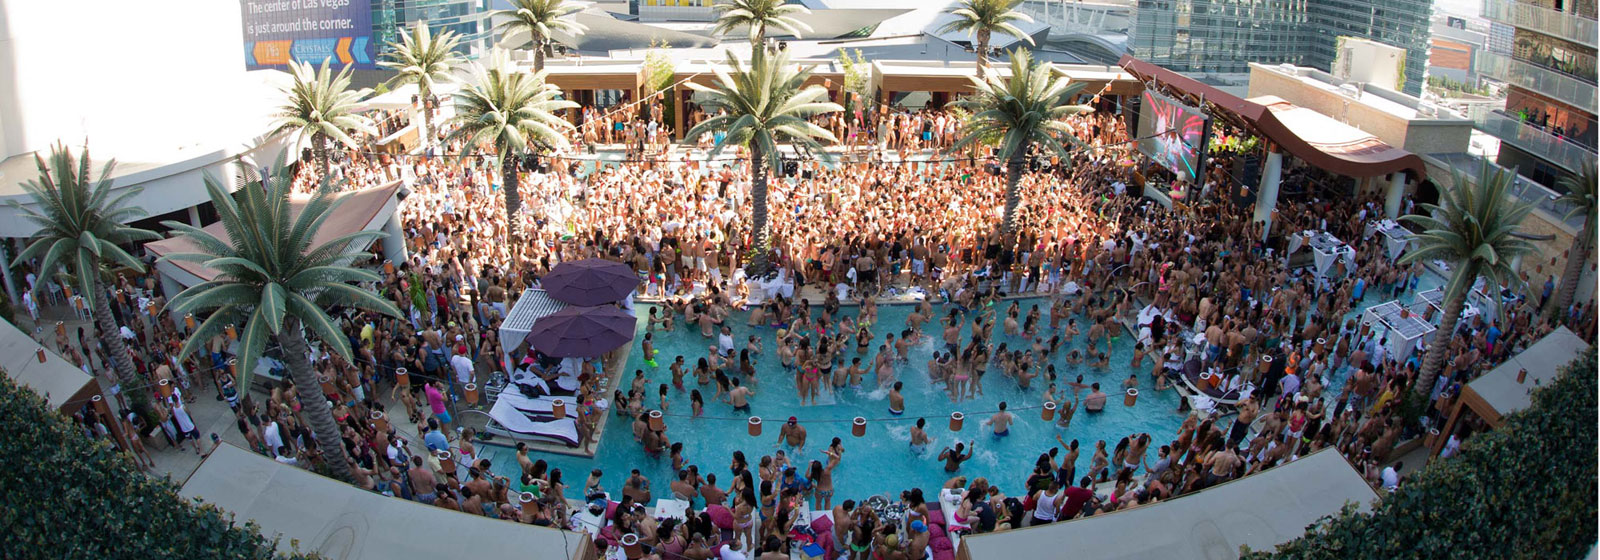 Las vegas pool parties schedule 2018 events tickets for Pool show las vegas 2018